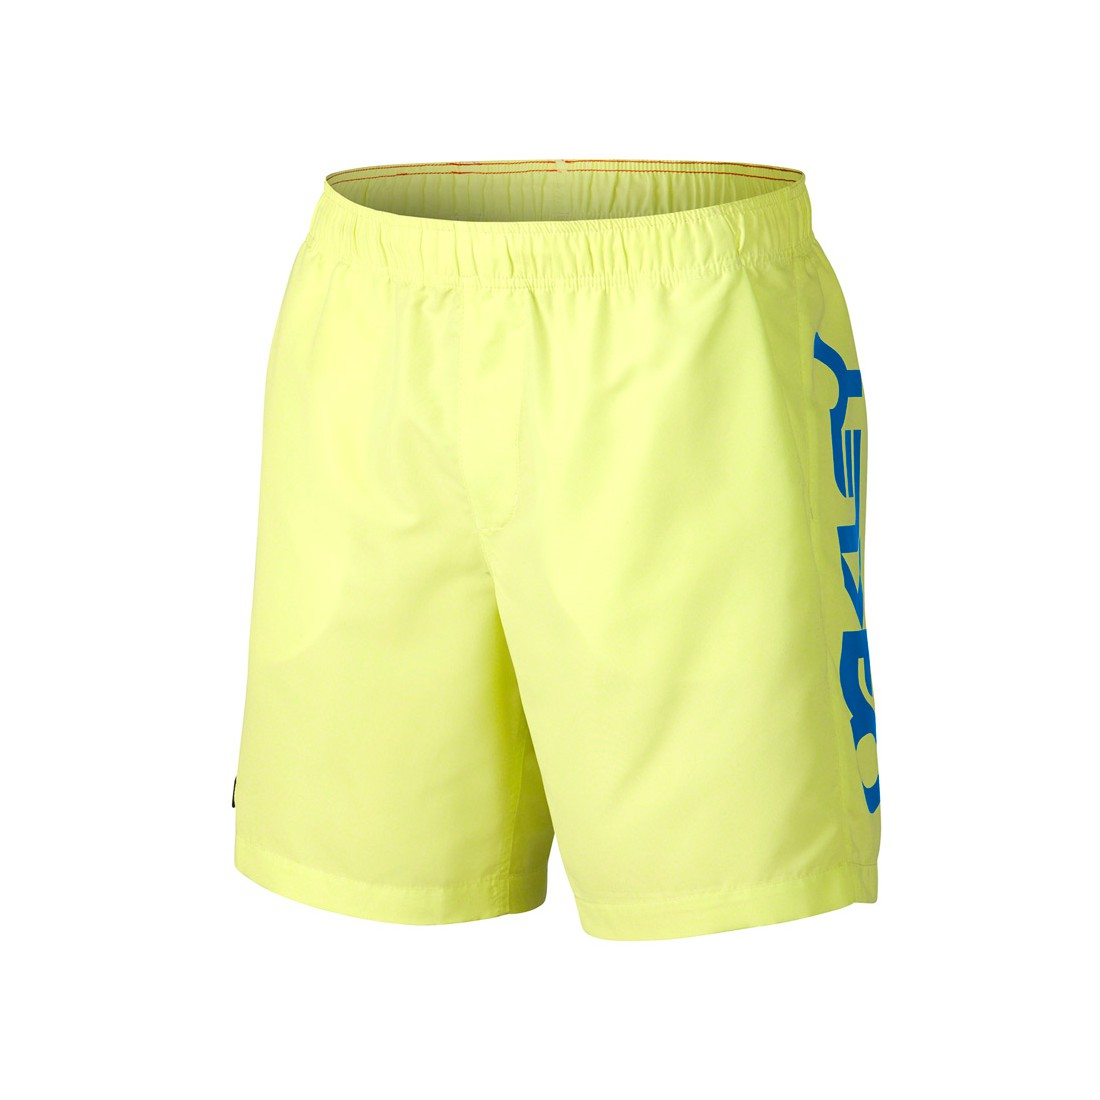 Hop Volley Short Bright Lime